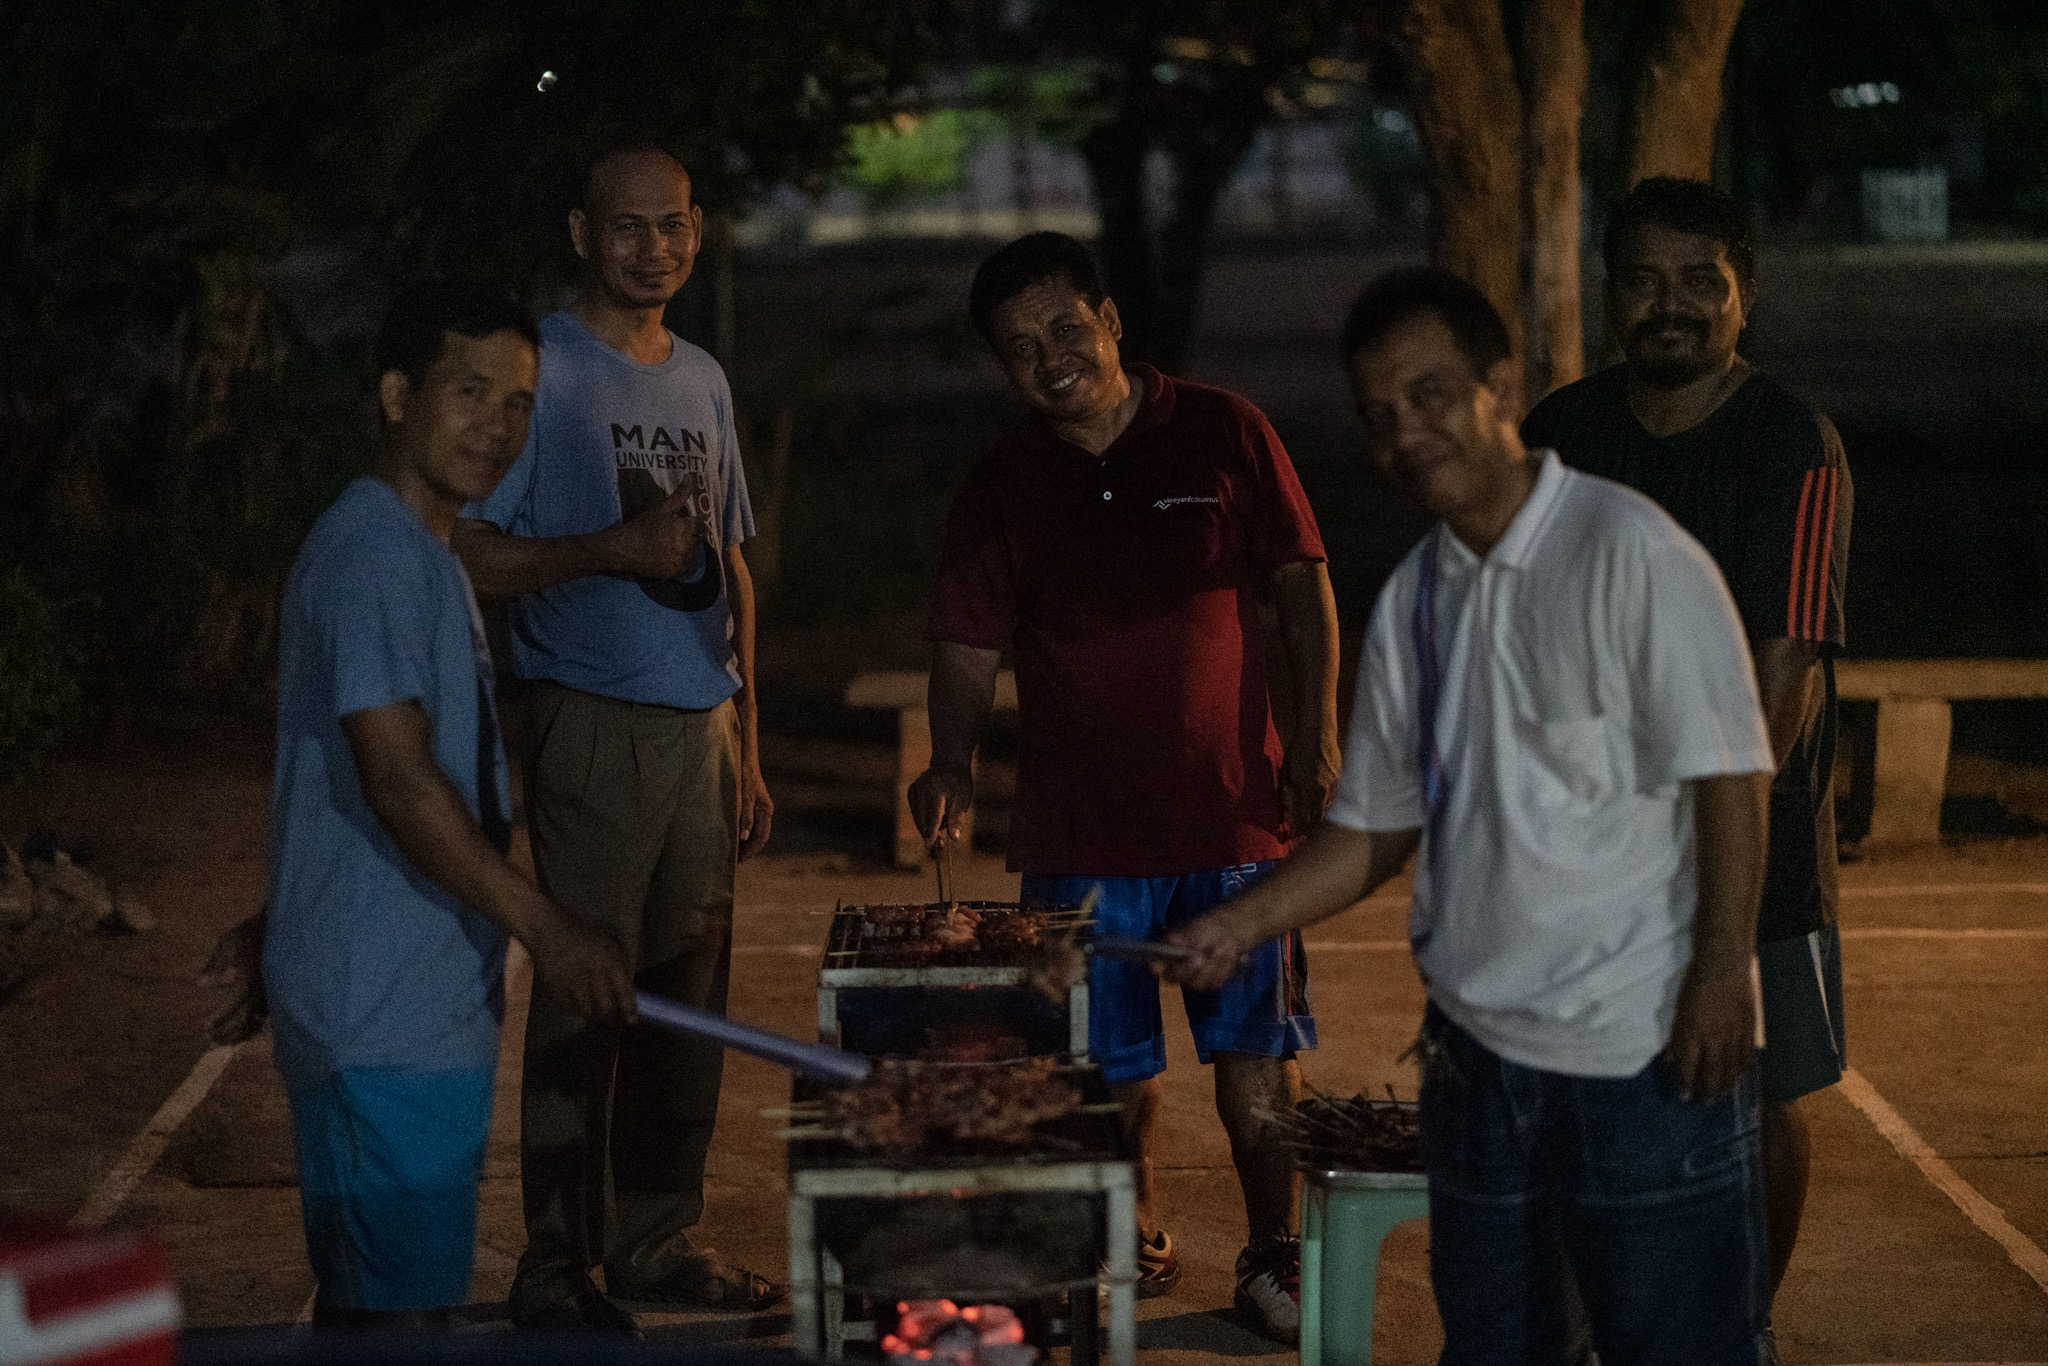 Asia's Hope dads help with the cooking in celebration of International Women's Day.